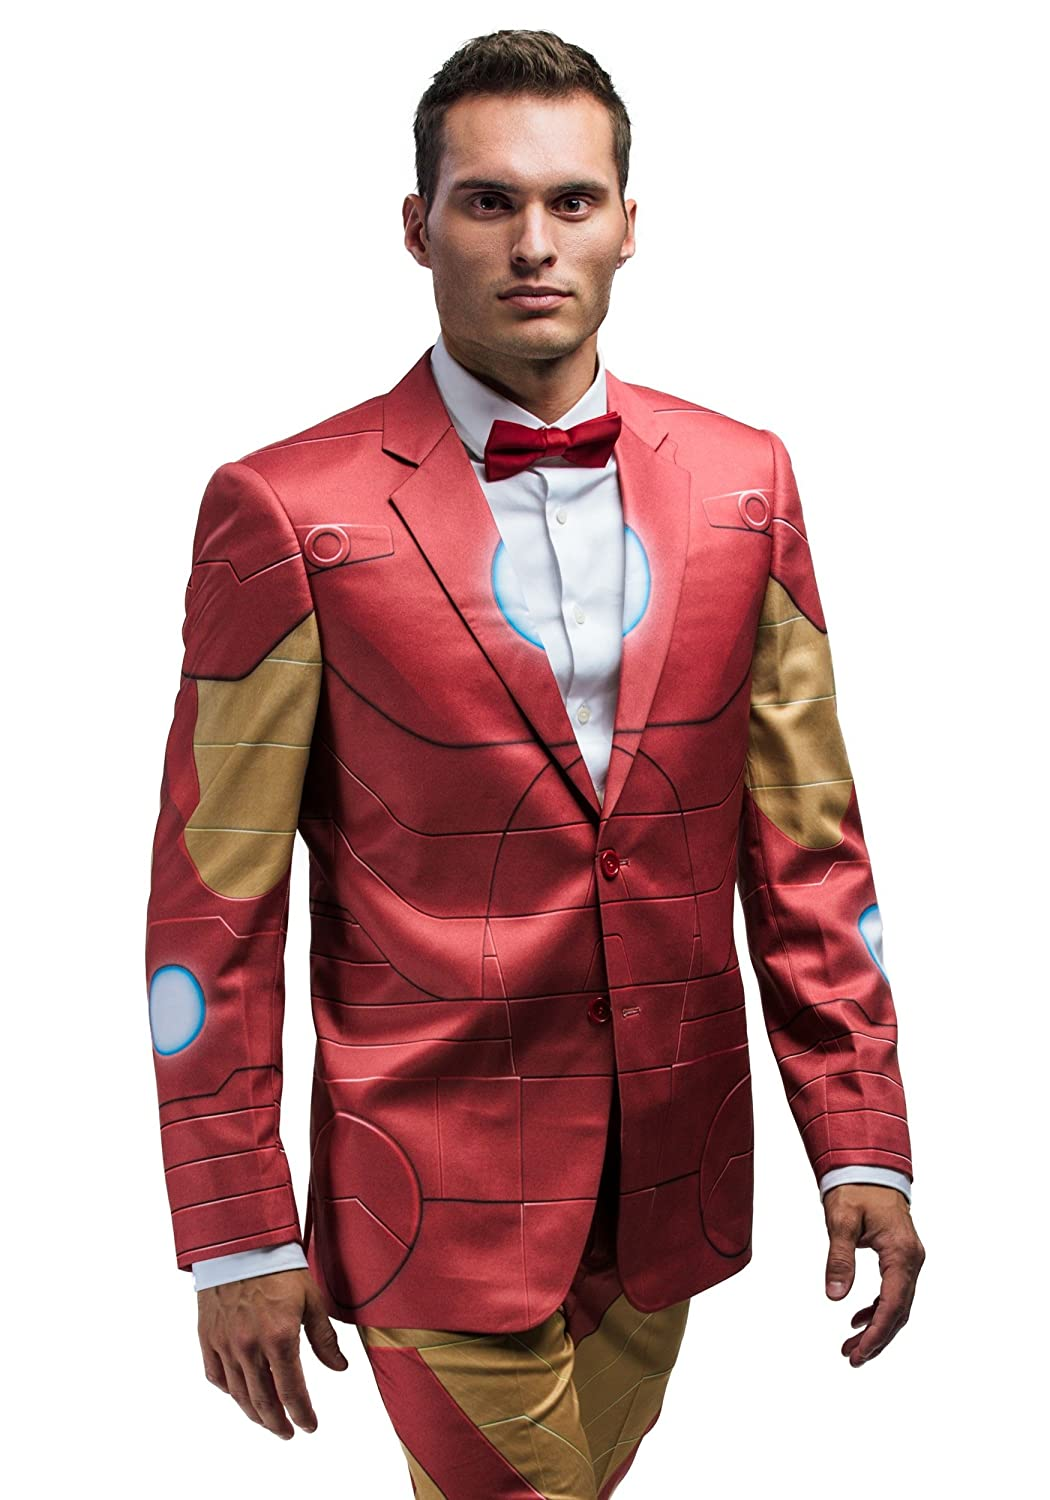 FunComInc Marvel Iron Man Slim Fit Adult Suit Jacket Outer Armor Print